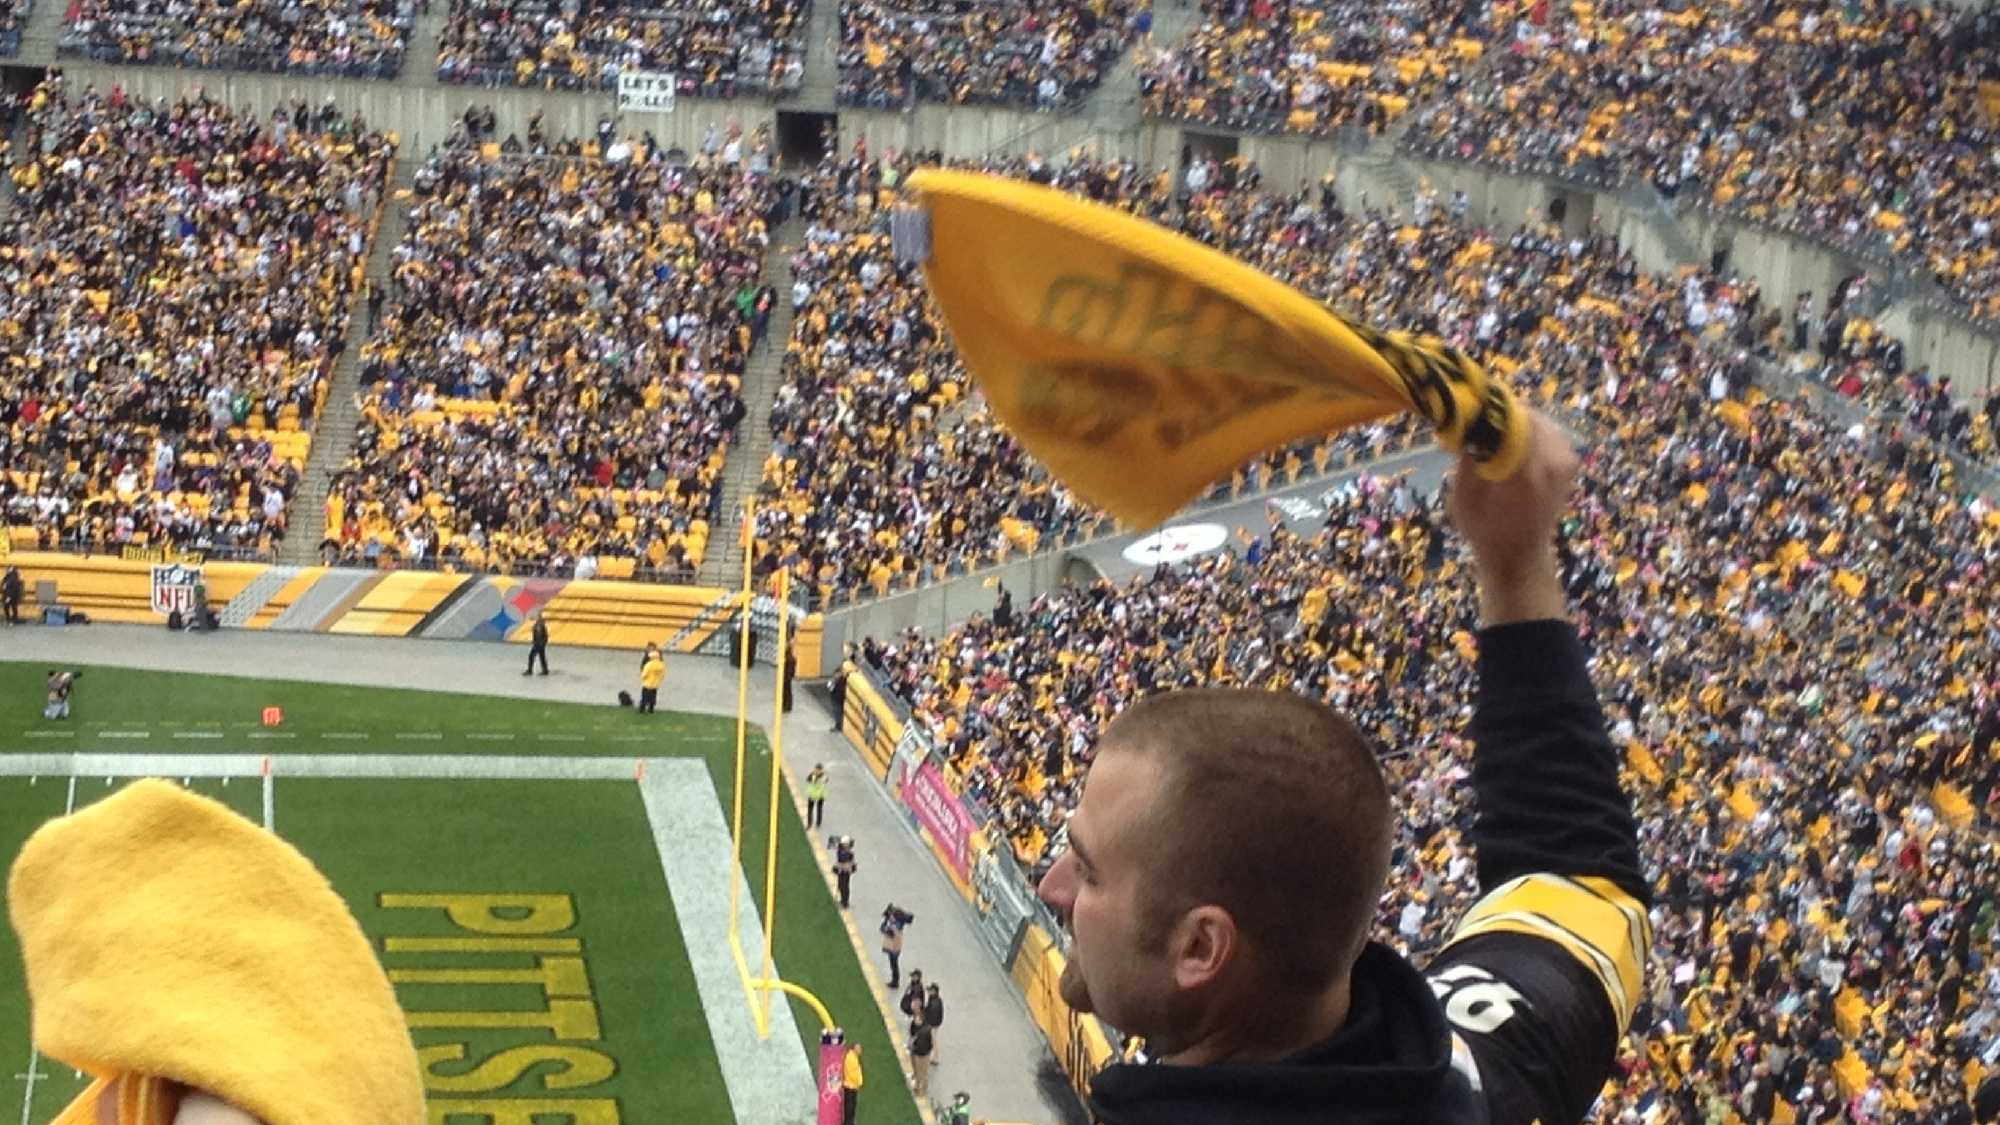 Steelers fans at Heinz Field